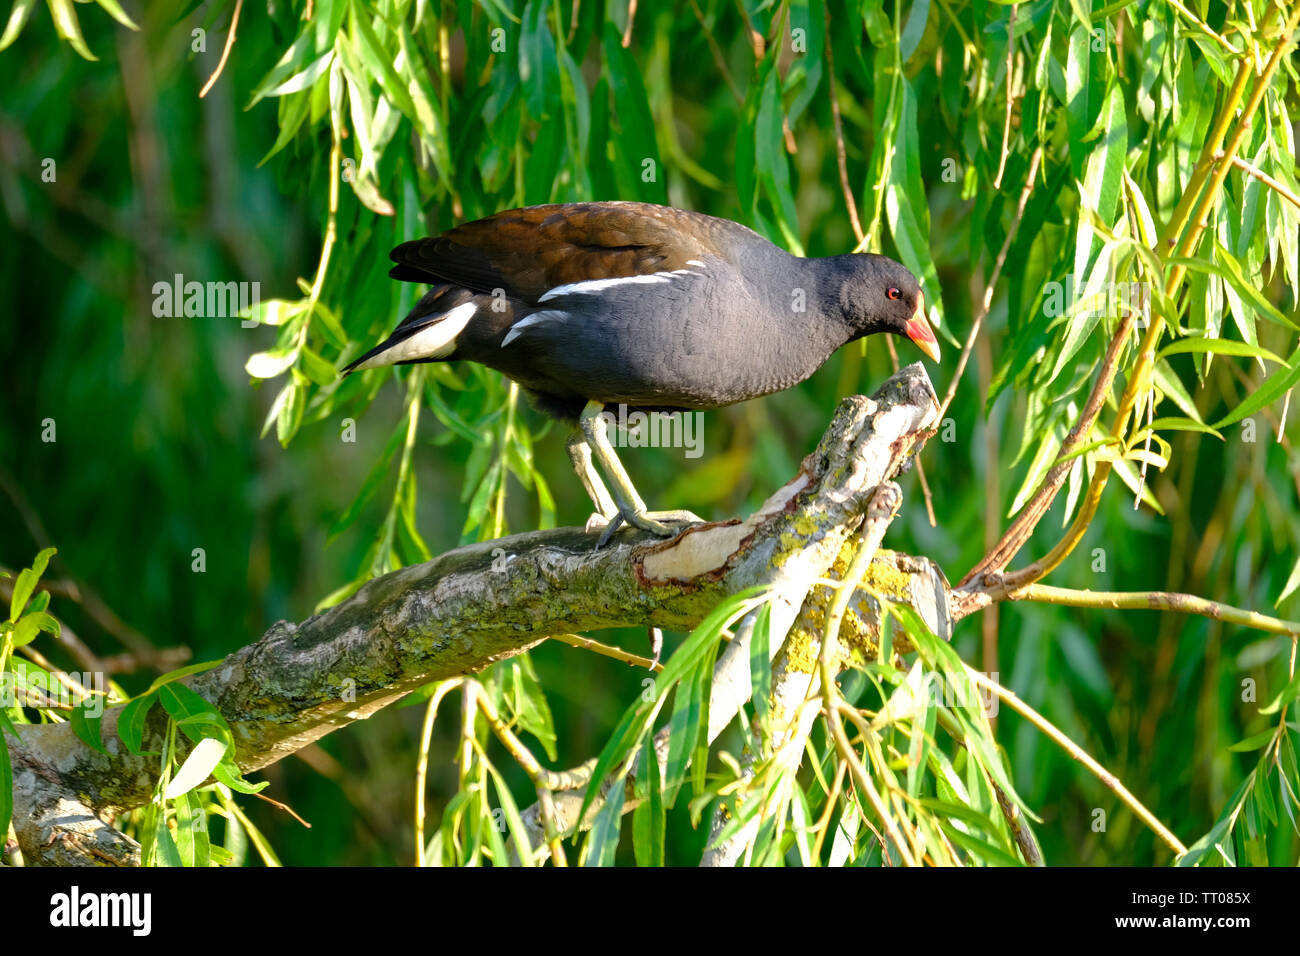 Felpham, West Sussex, UK. A Common Moorhen (Gallinula chloropus) balanced on the branch of a Weeping Willow tree (Salix babylonica). Gender unknown. - Stock Image